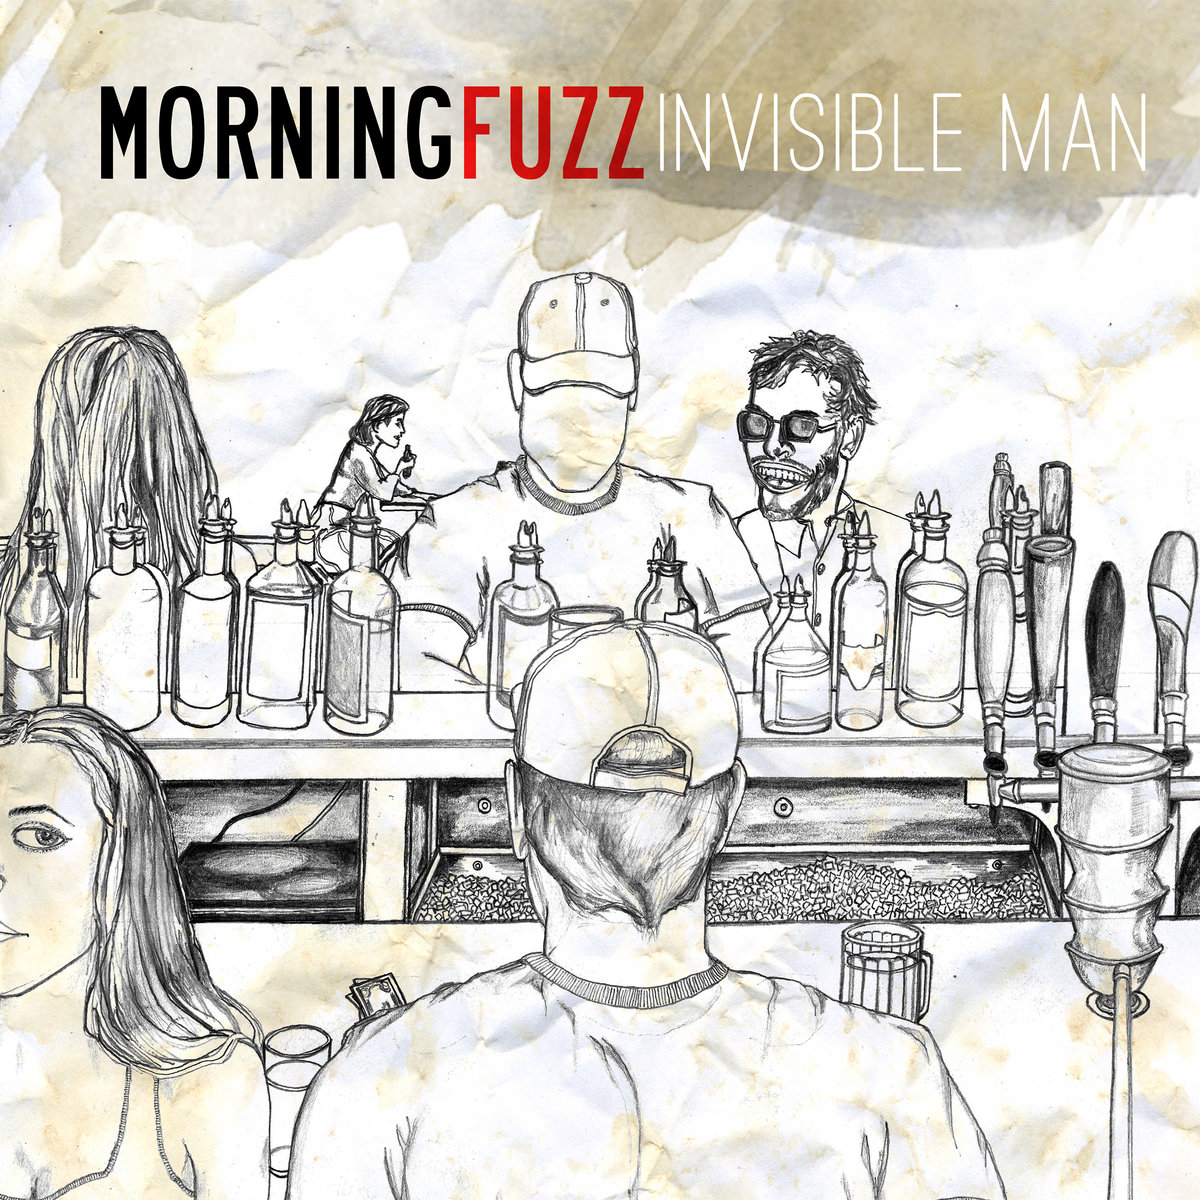 Invisible Man by Morning Fuzz